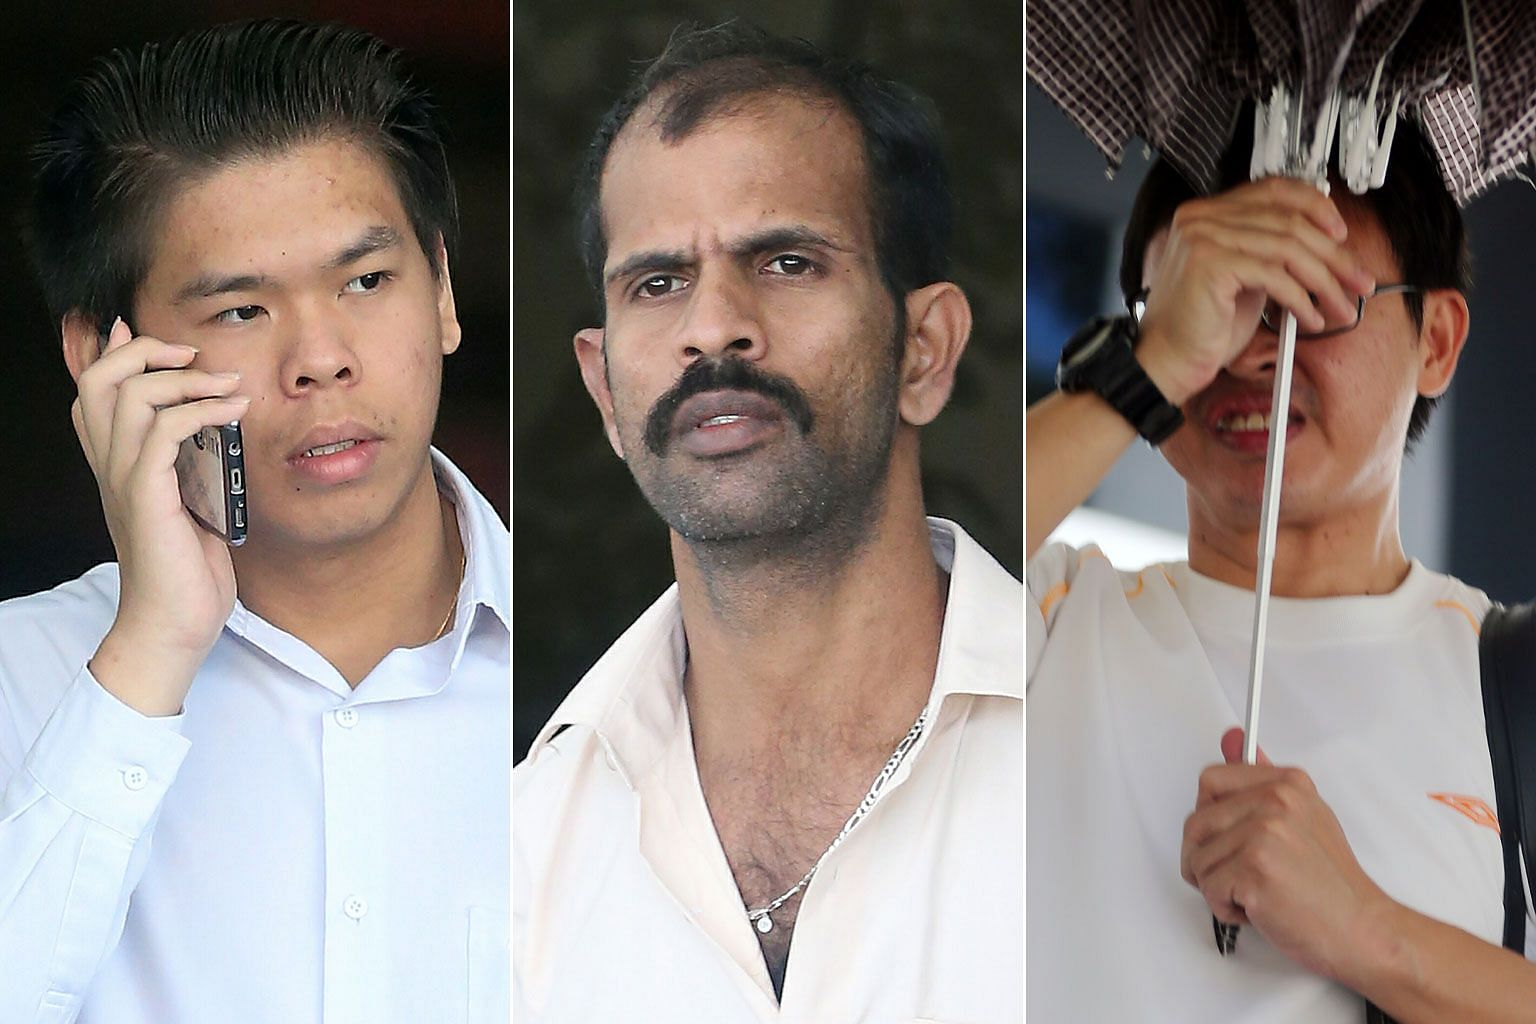 (From top) E-scooter rider Ho Jun Wei, cyclist Sathappan Anbarasan and e-scooter rider Chew Hup Seng were charged with rash or negligent acts. Ho's and Sathappan's victims were injured and taken to hospital.